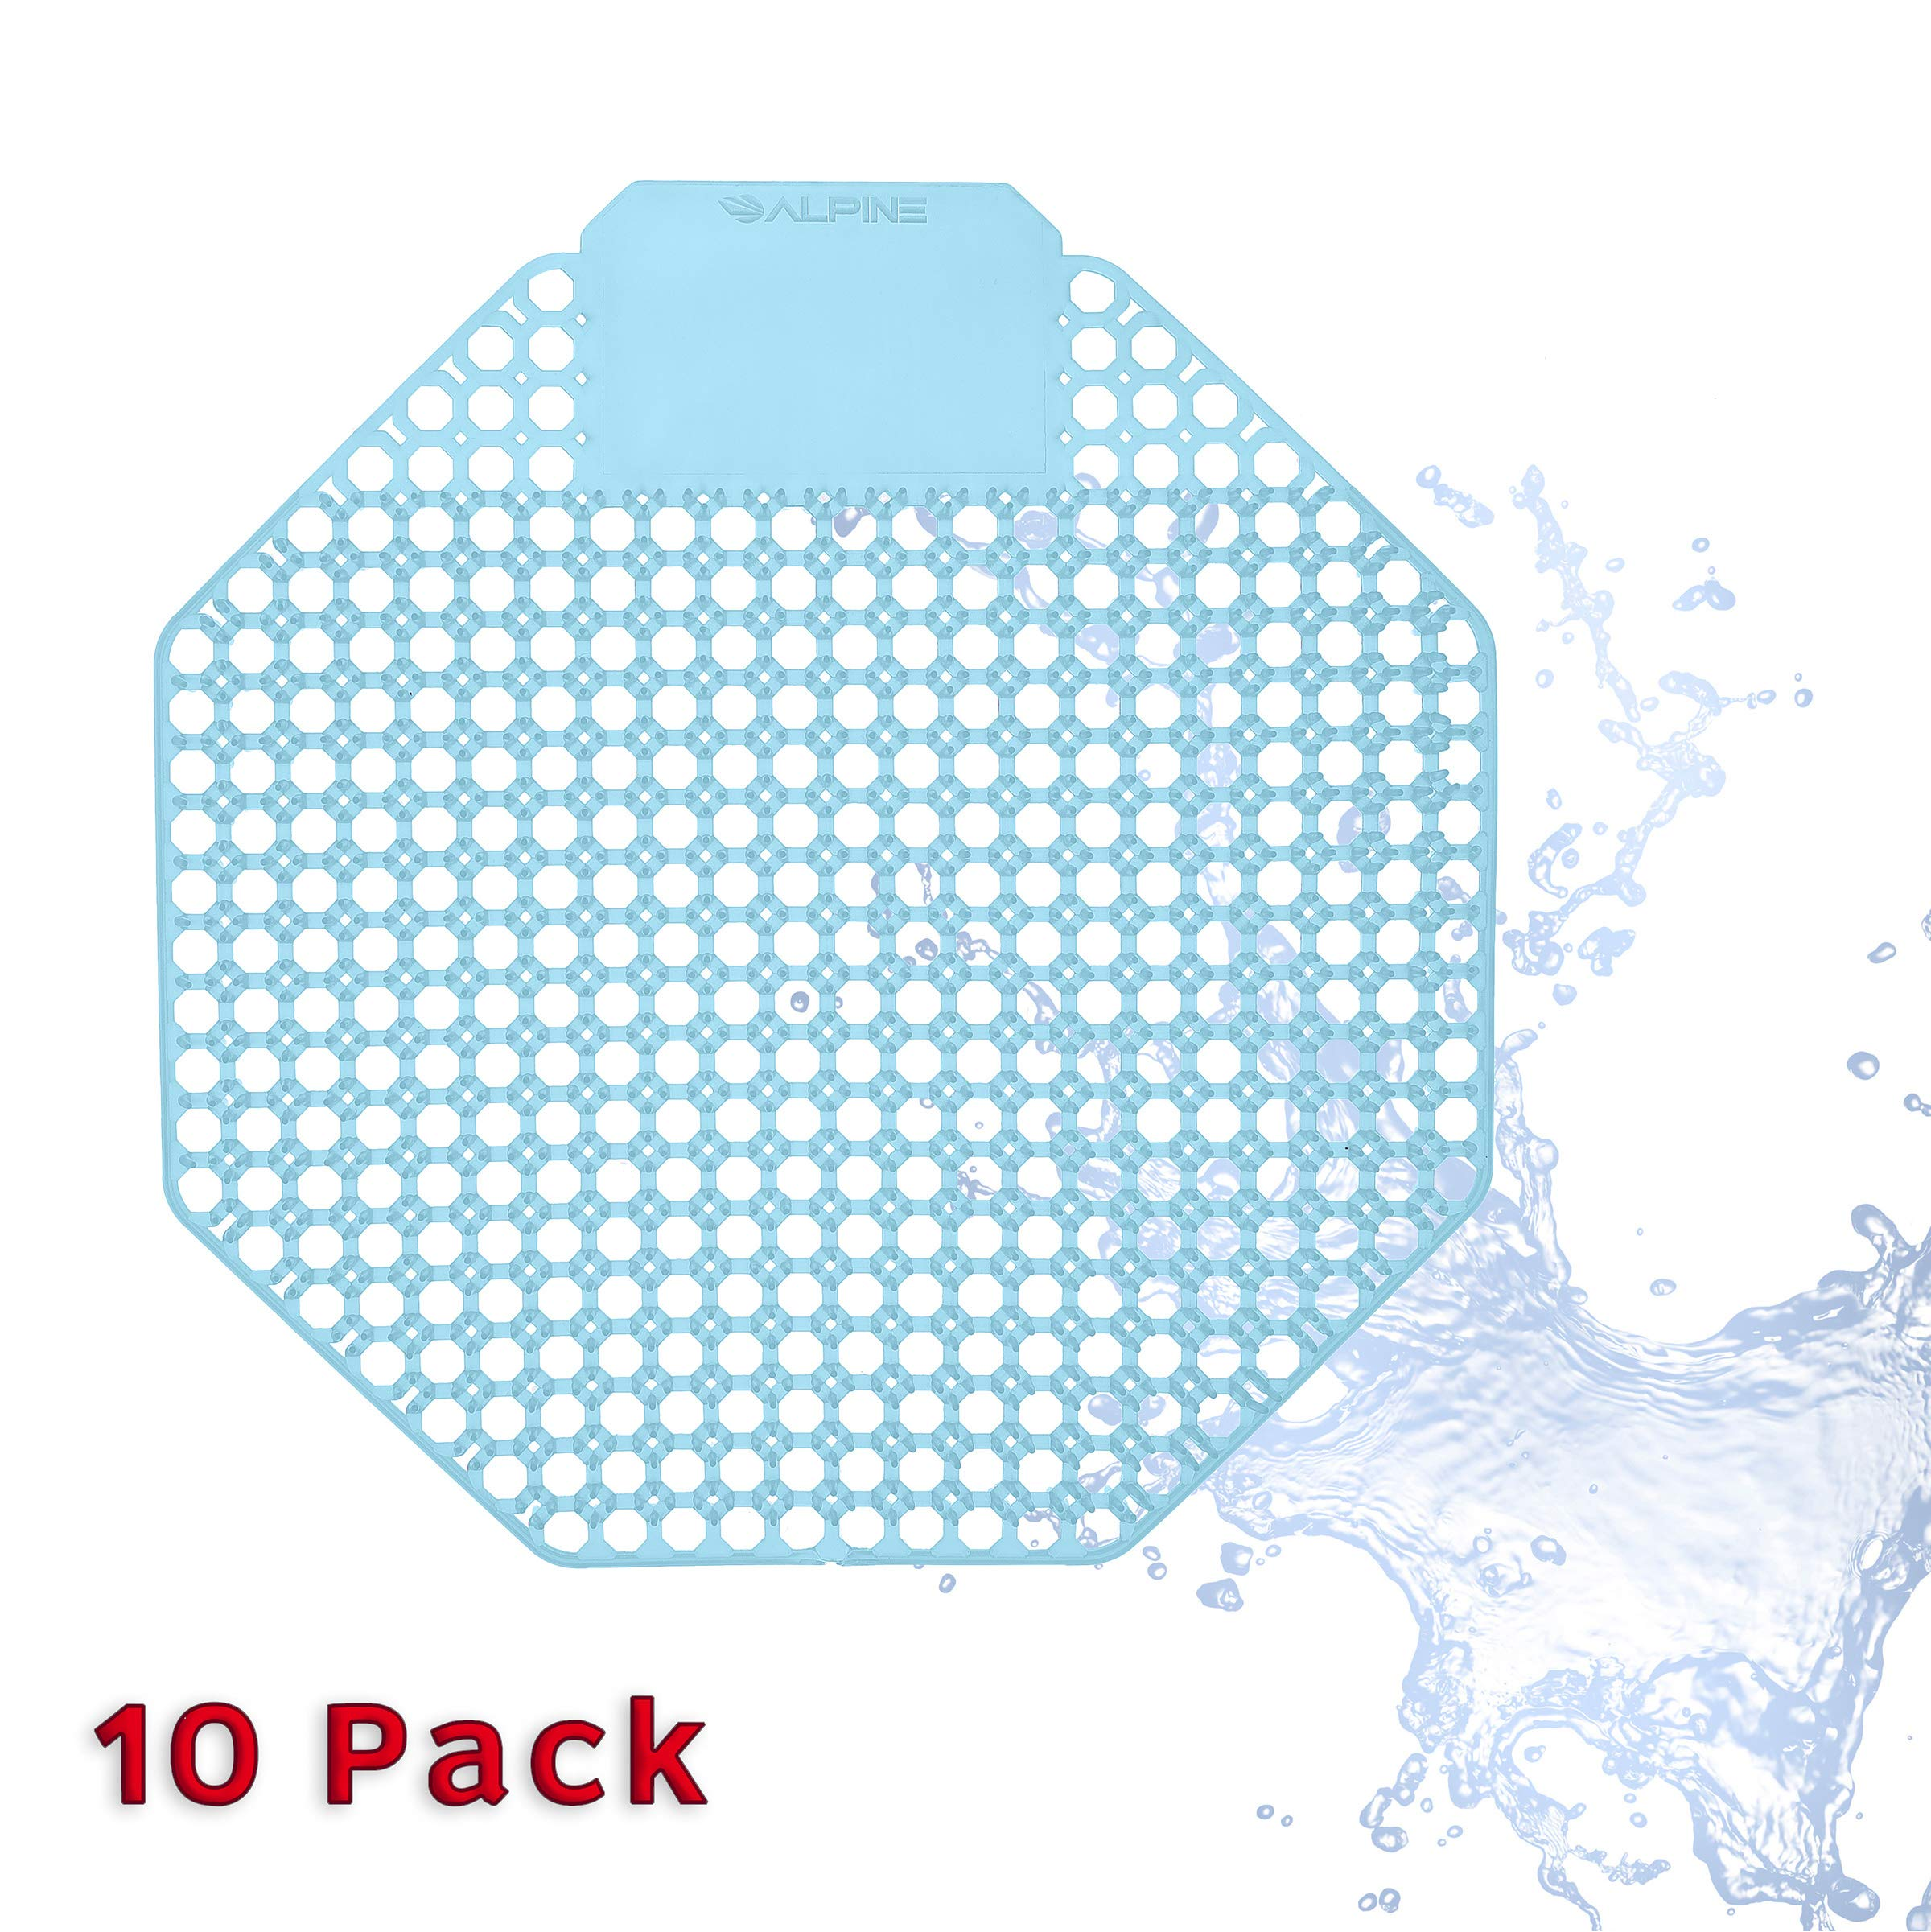 Urinal Screen Deodorizer (10 Pack) - Scent Lasts for Up to 5000 Flushes – Anti-Splash & Odor Neutralizer – Ideal for Bathrooms, Restrooms, Office, Restaurants, Schools - Blue - Ocean Mist Scented